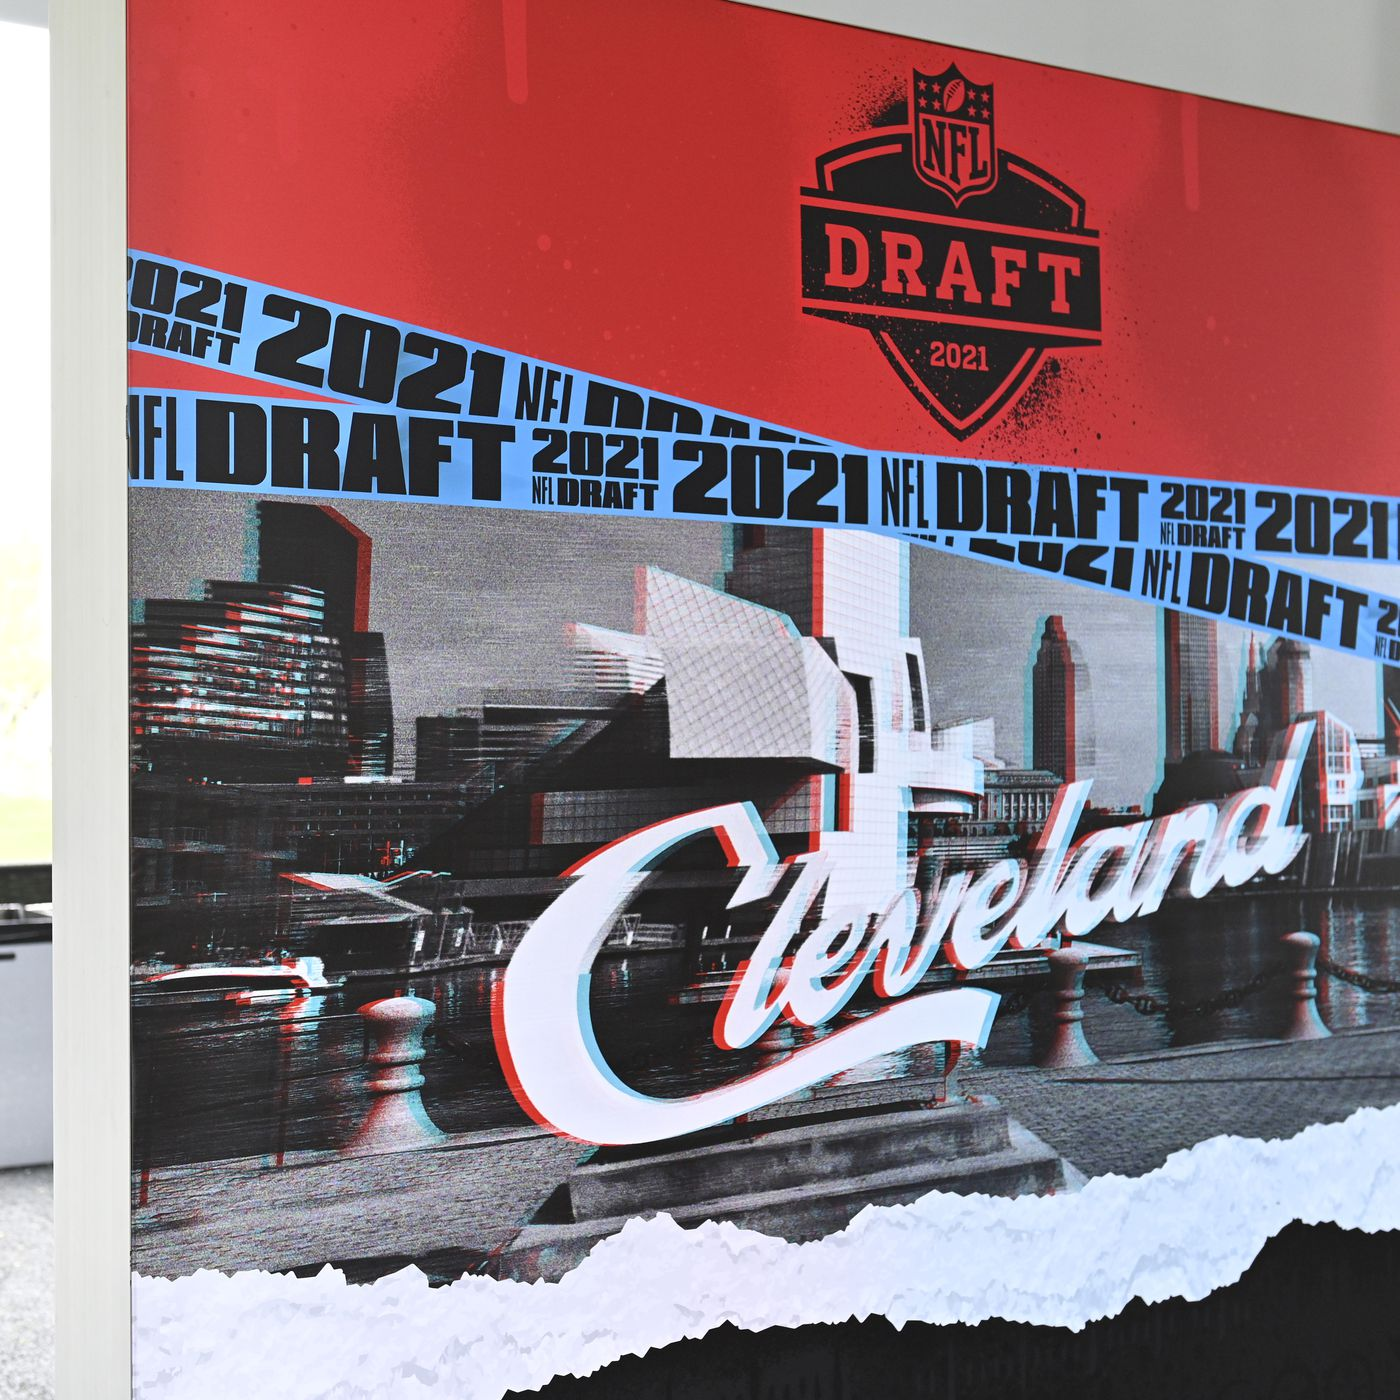 2021 Nfl Draft Who Will The Detroit Lions Select In The First Round Pride Of Detroit